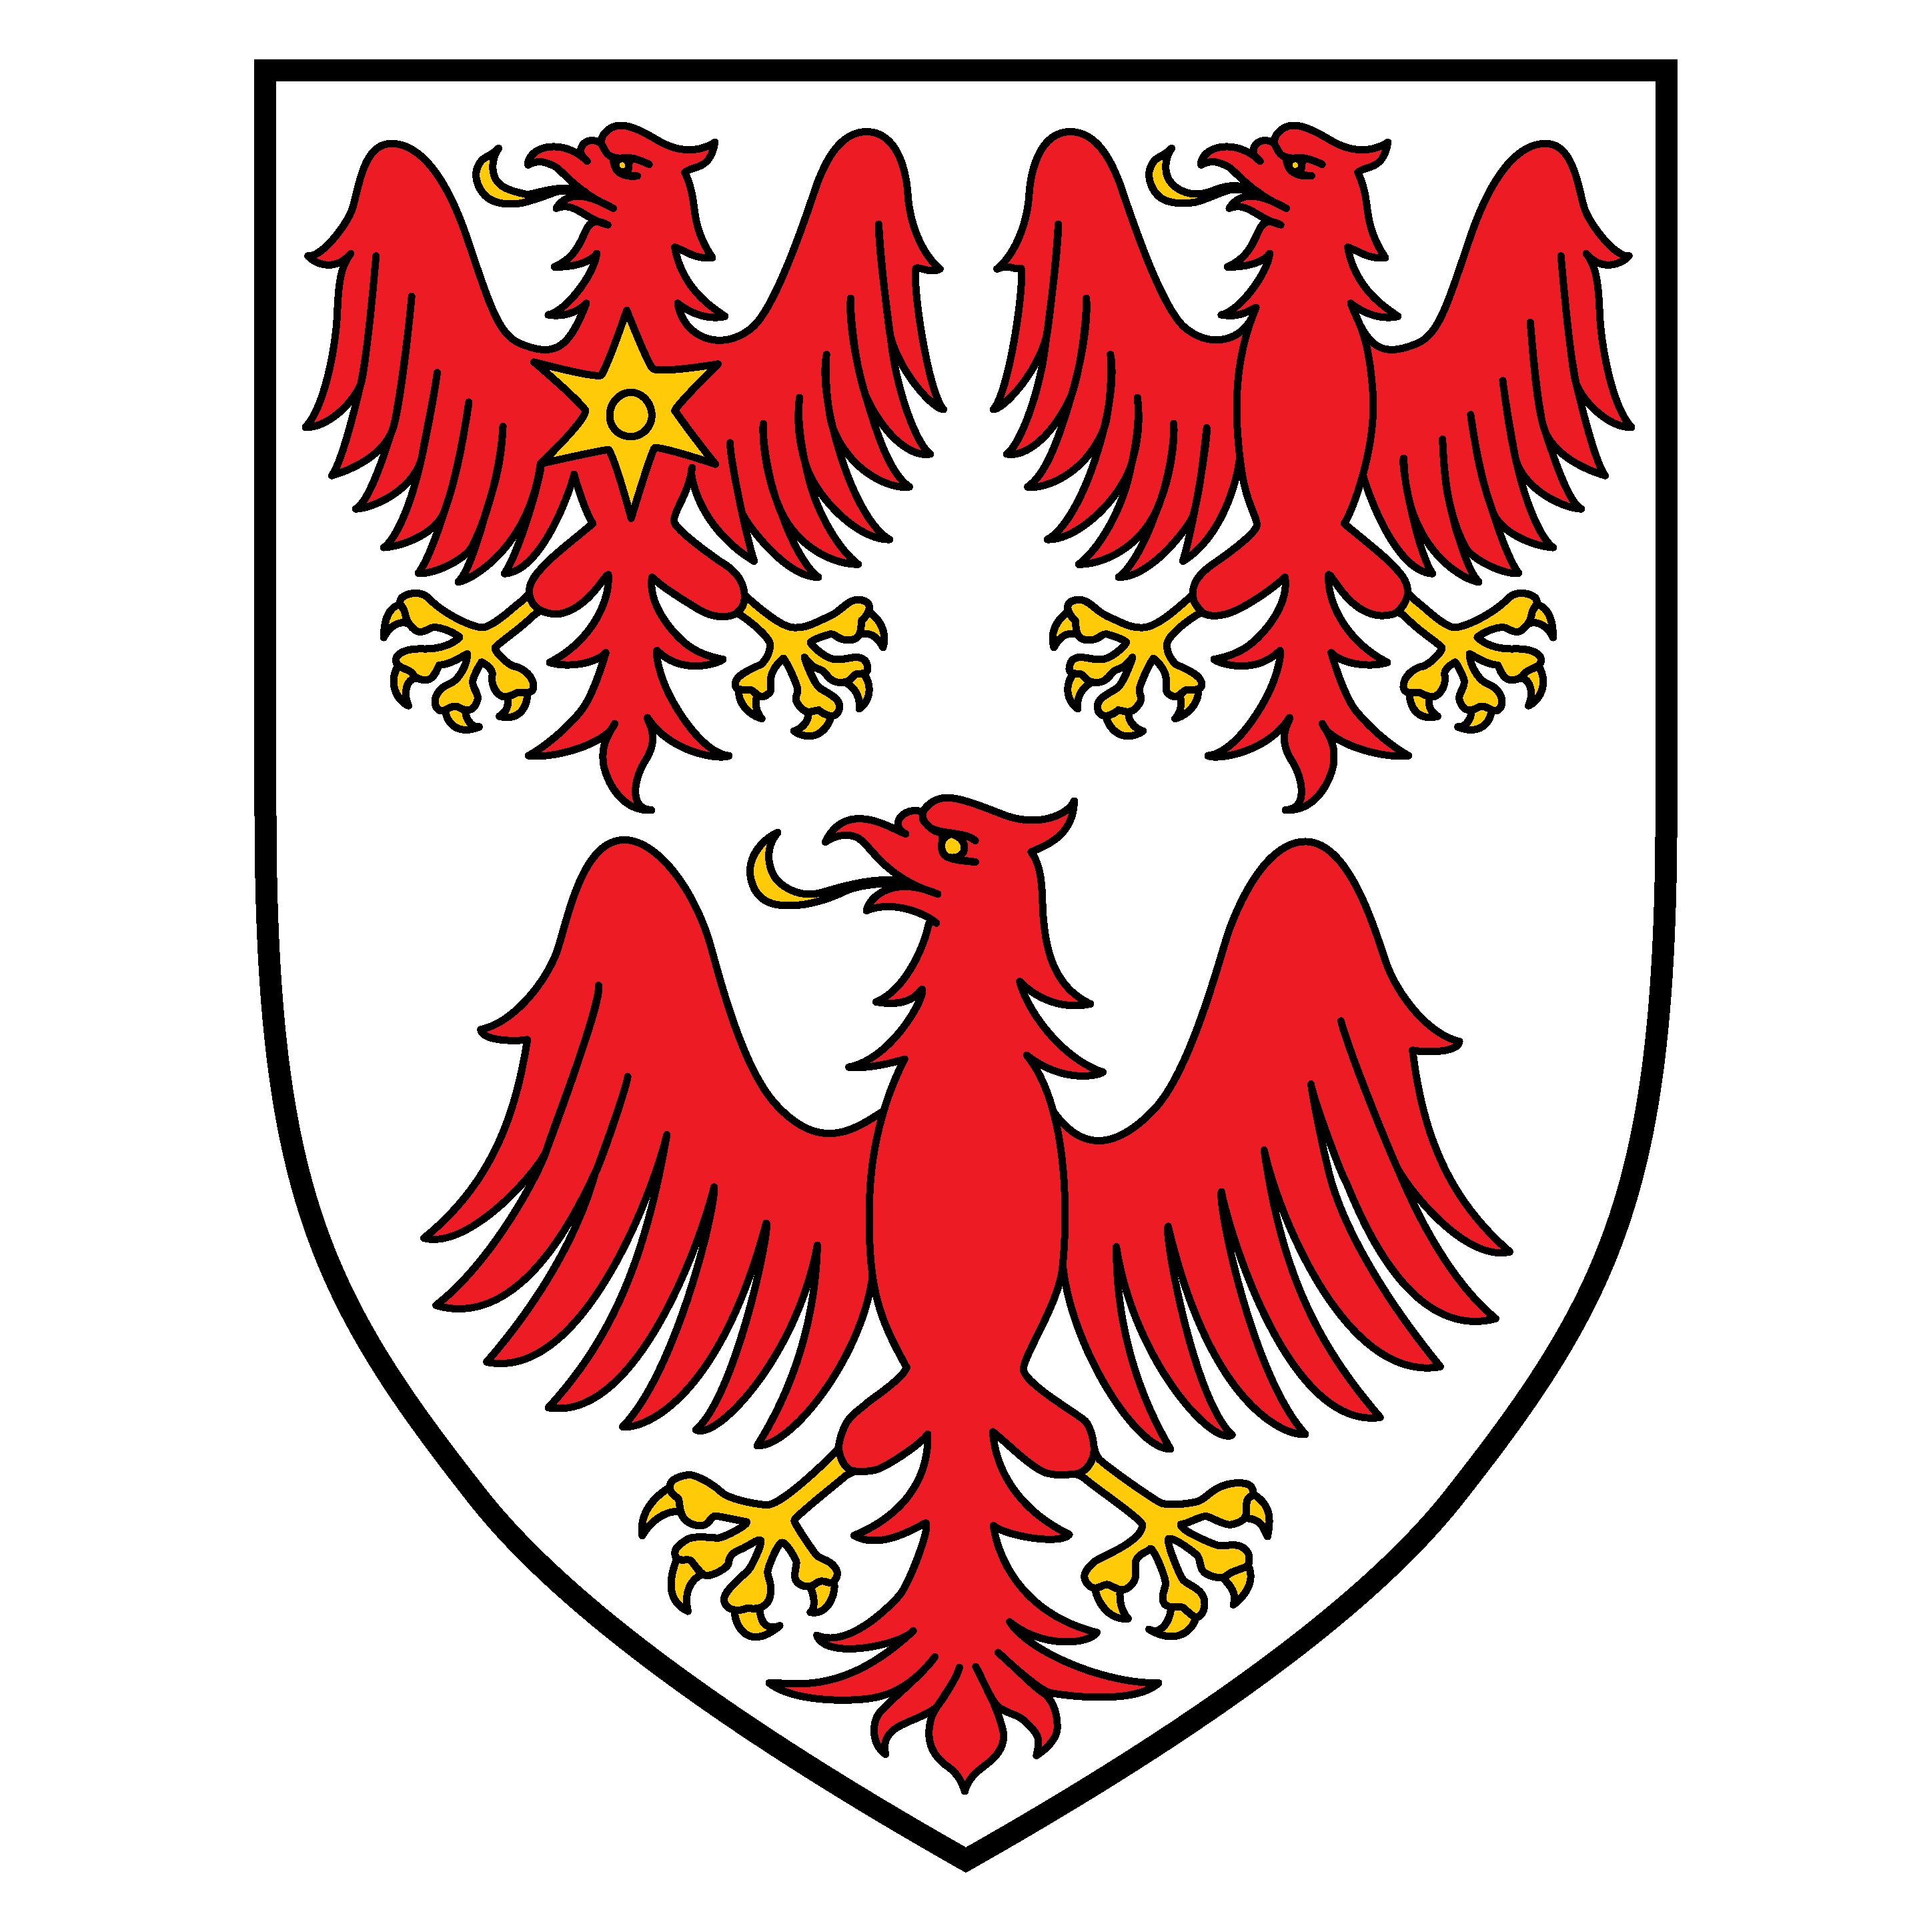 The College coat of arms